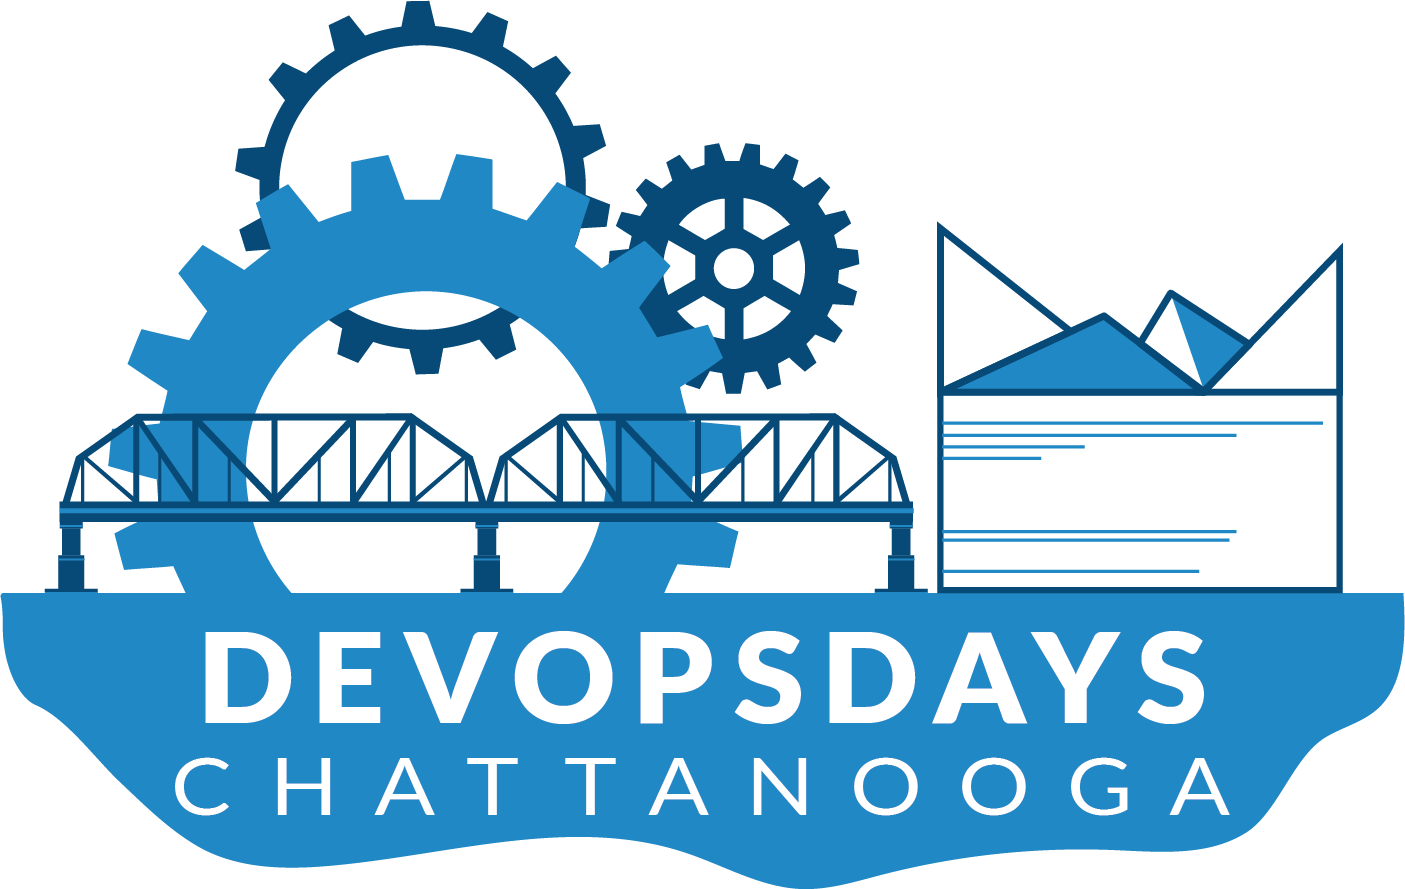 devopsdays Chattanooga 2019